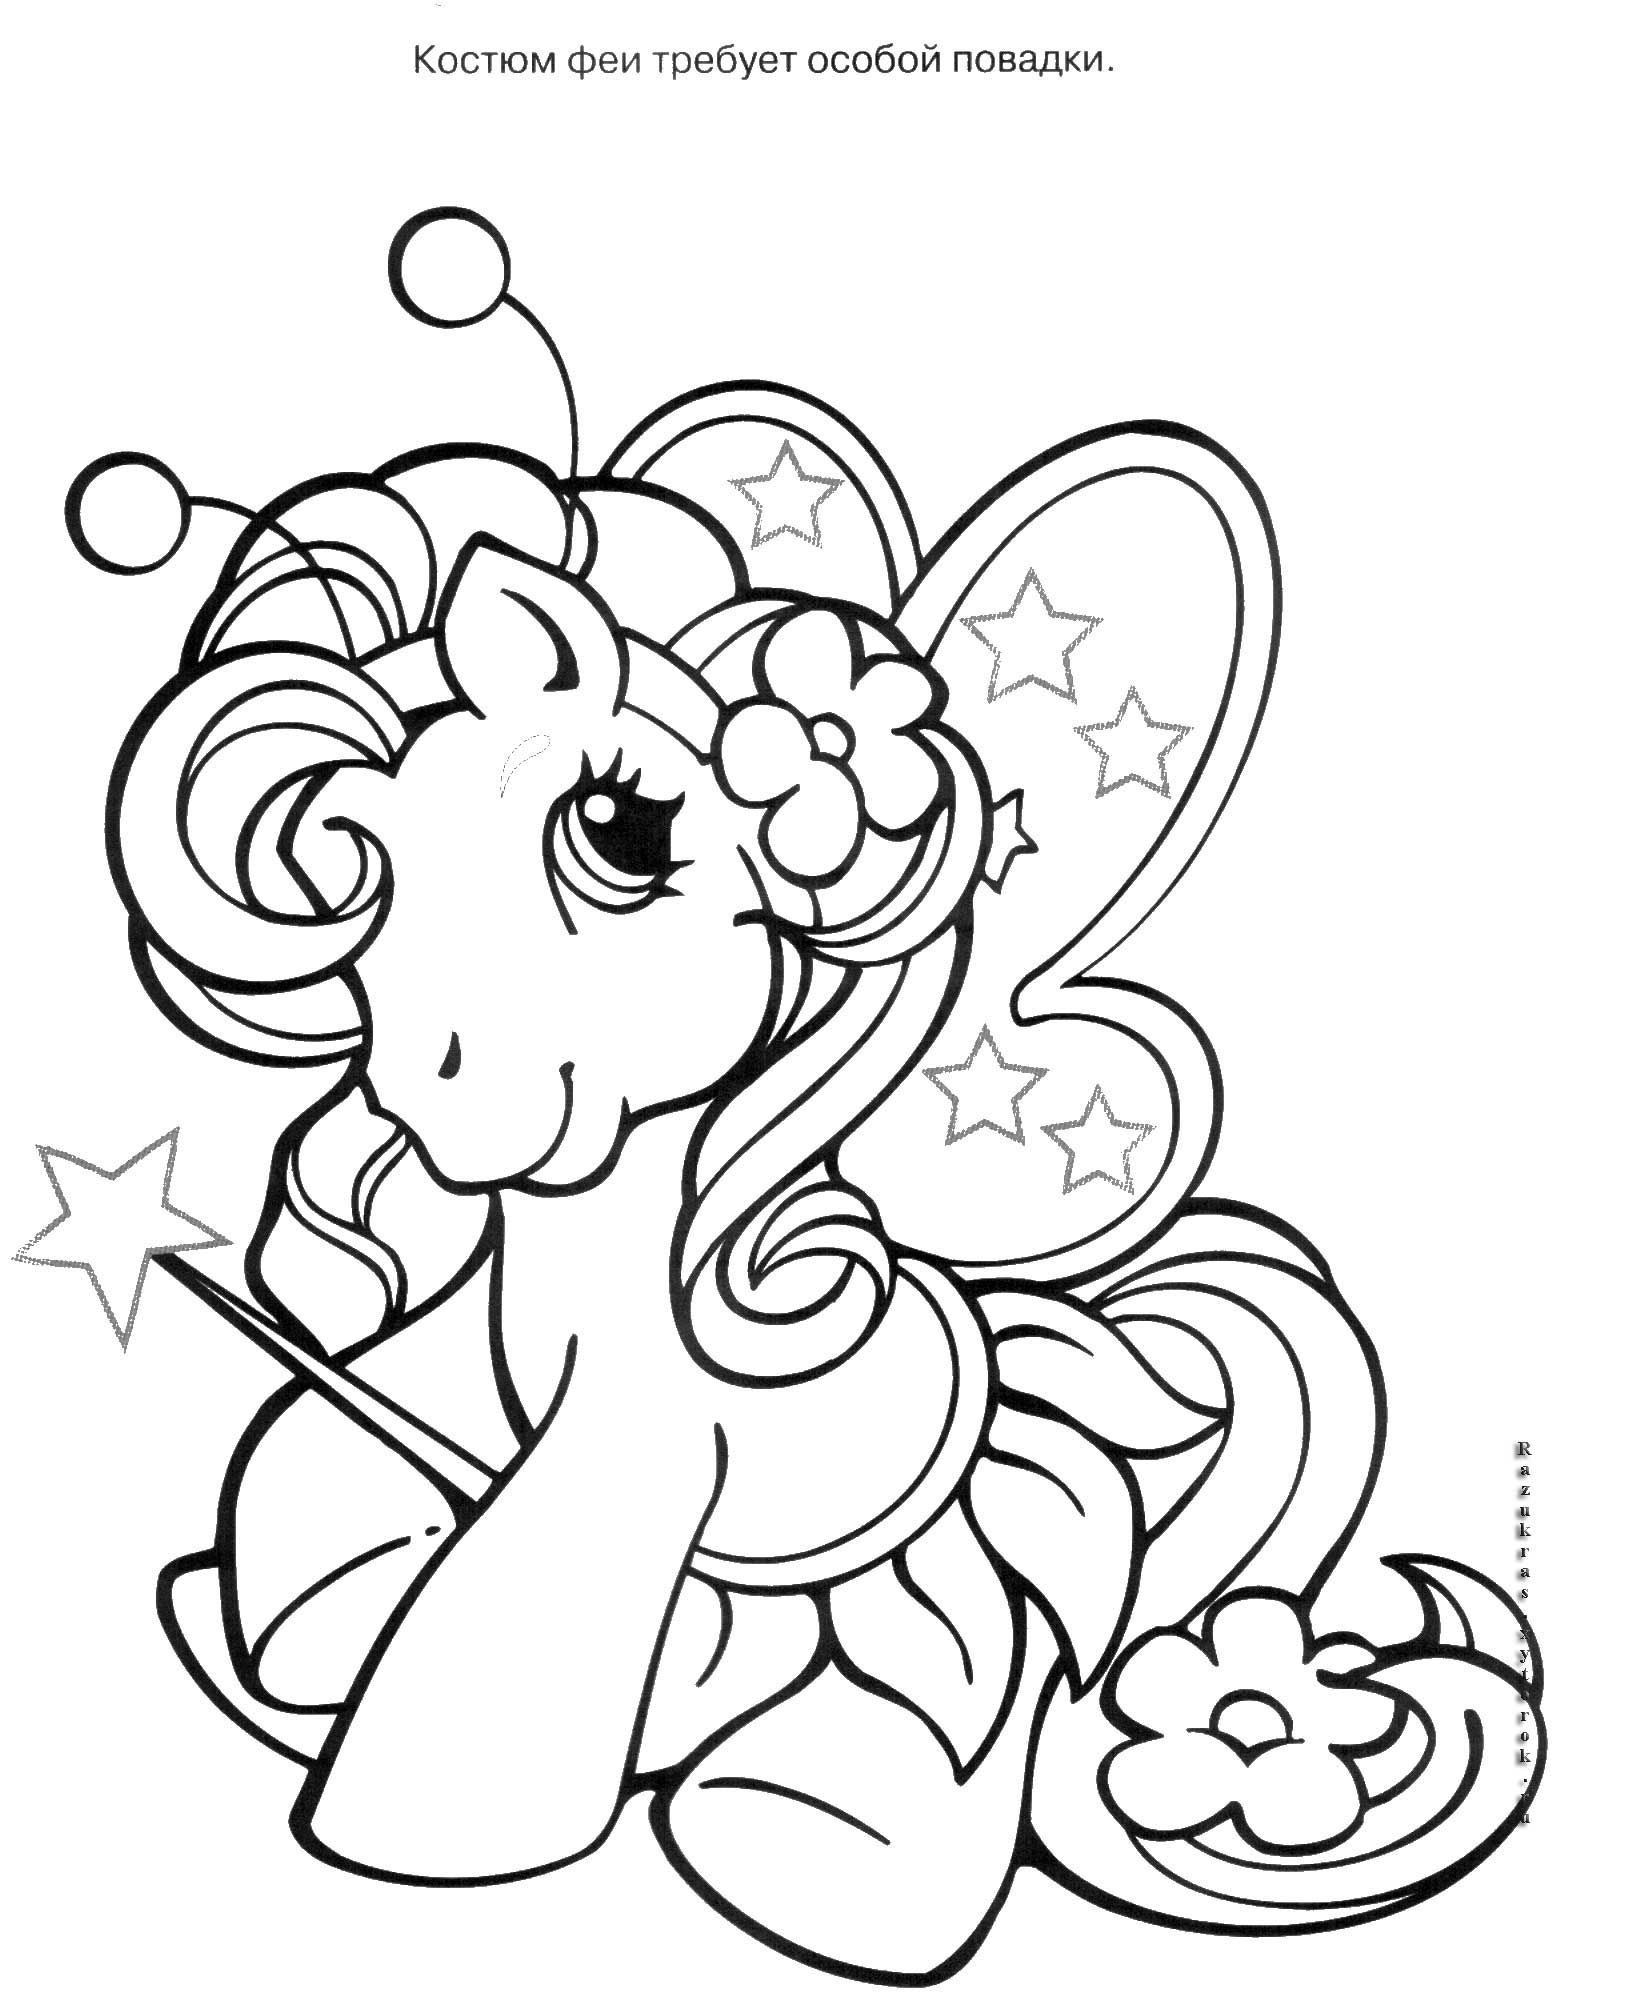 Pink Fluffy Unicorns Dancing On Rainbows Coloring Pages